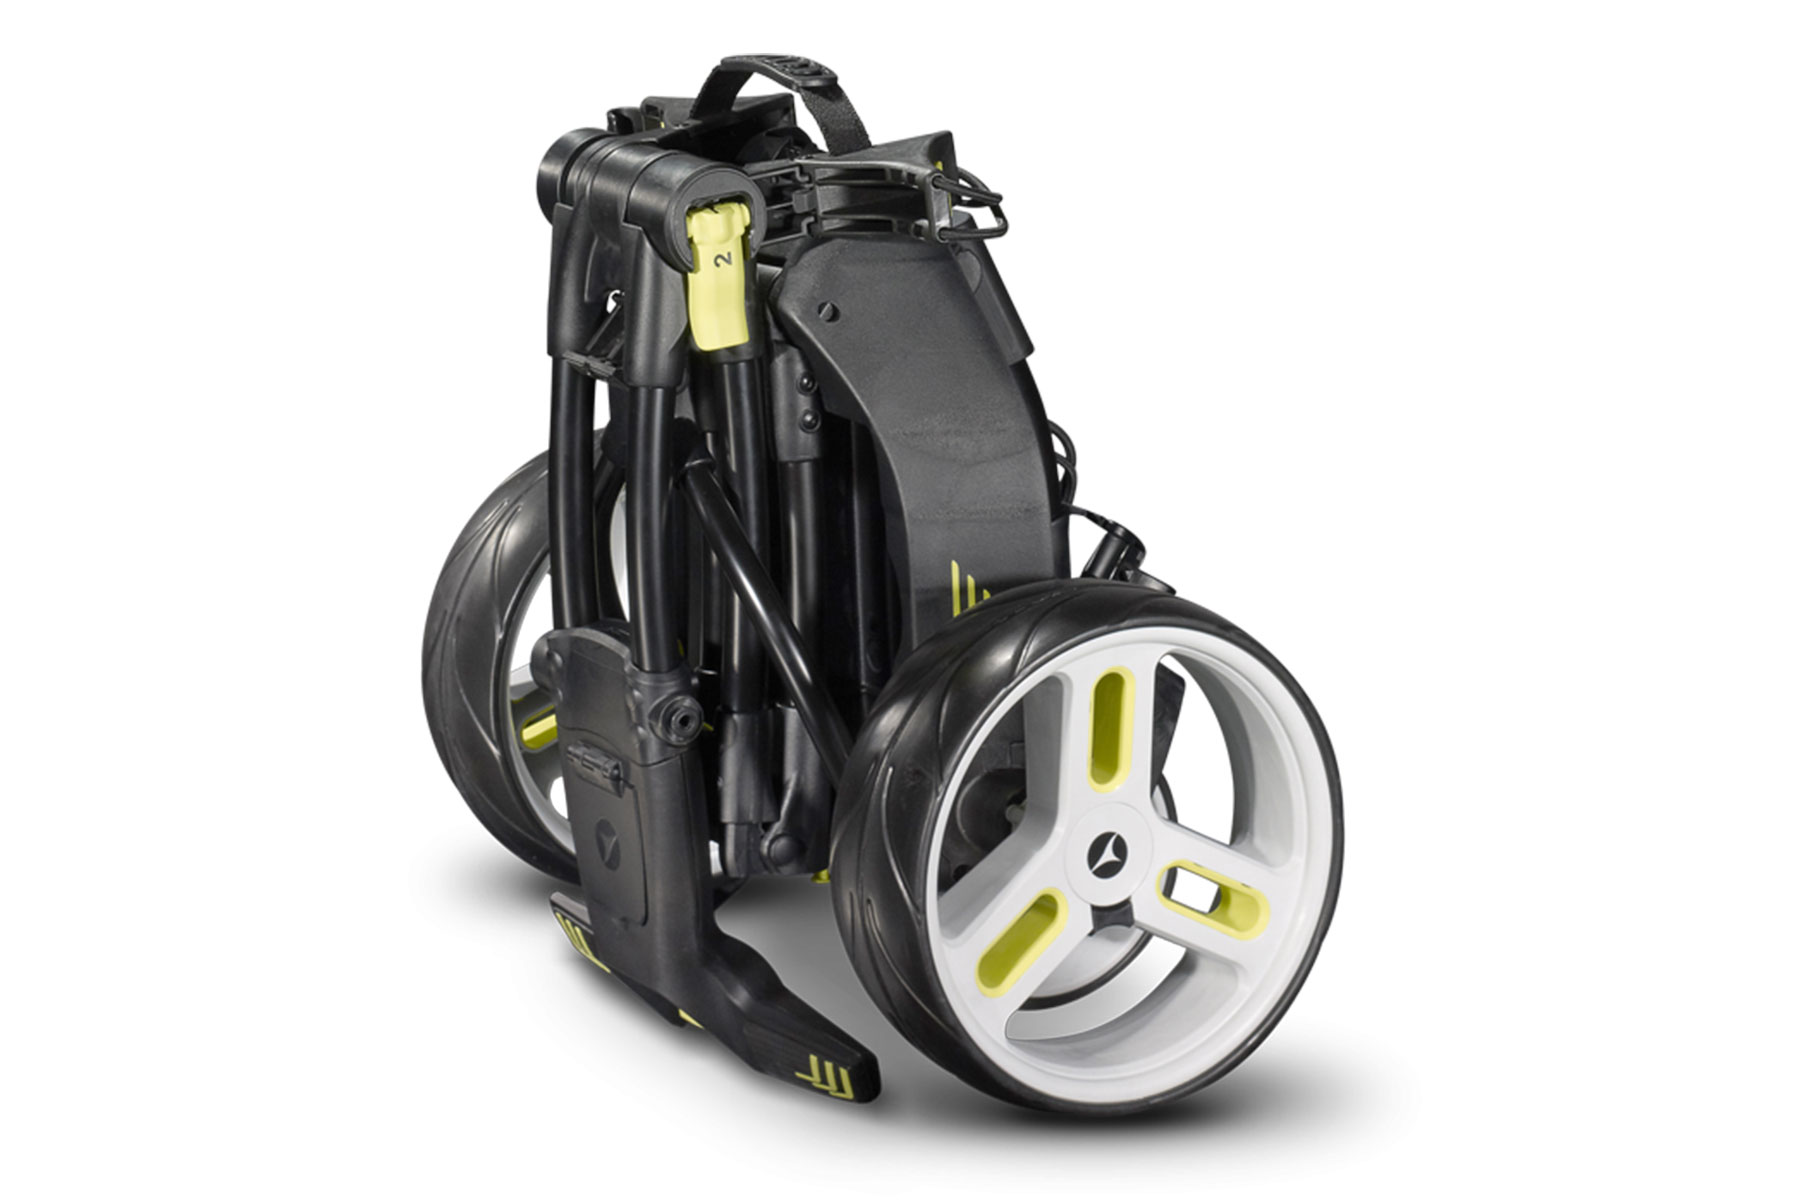 motocaddy m3 pro lithium standard range electric trolley from american golf. Black Bedroom Furniture Sets. Home Design Ideas